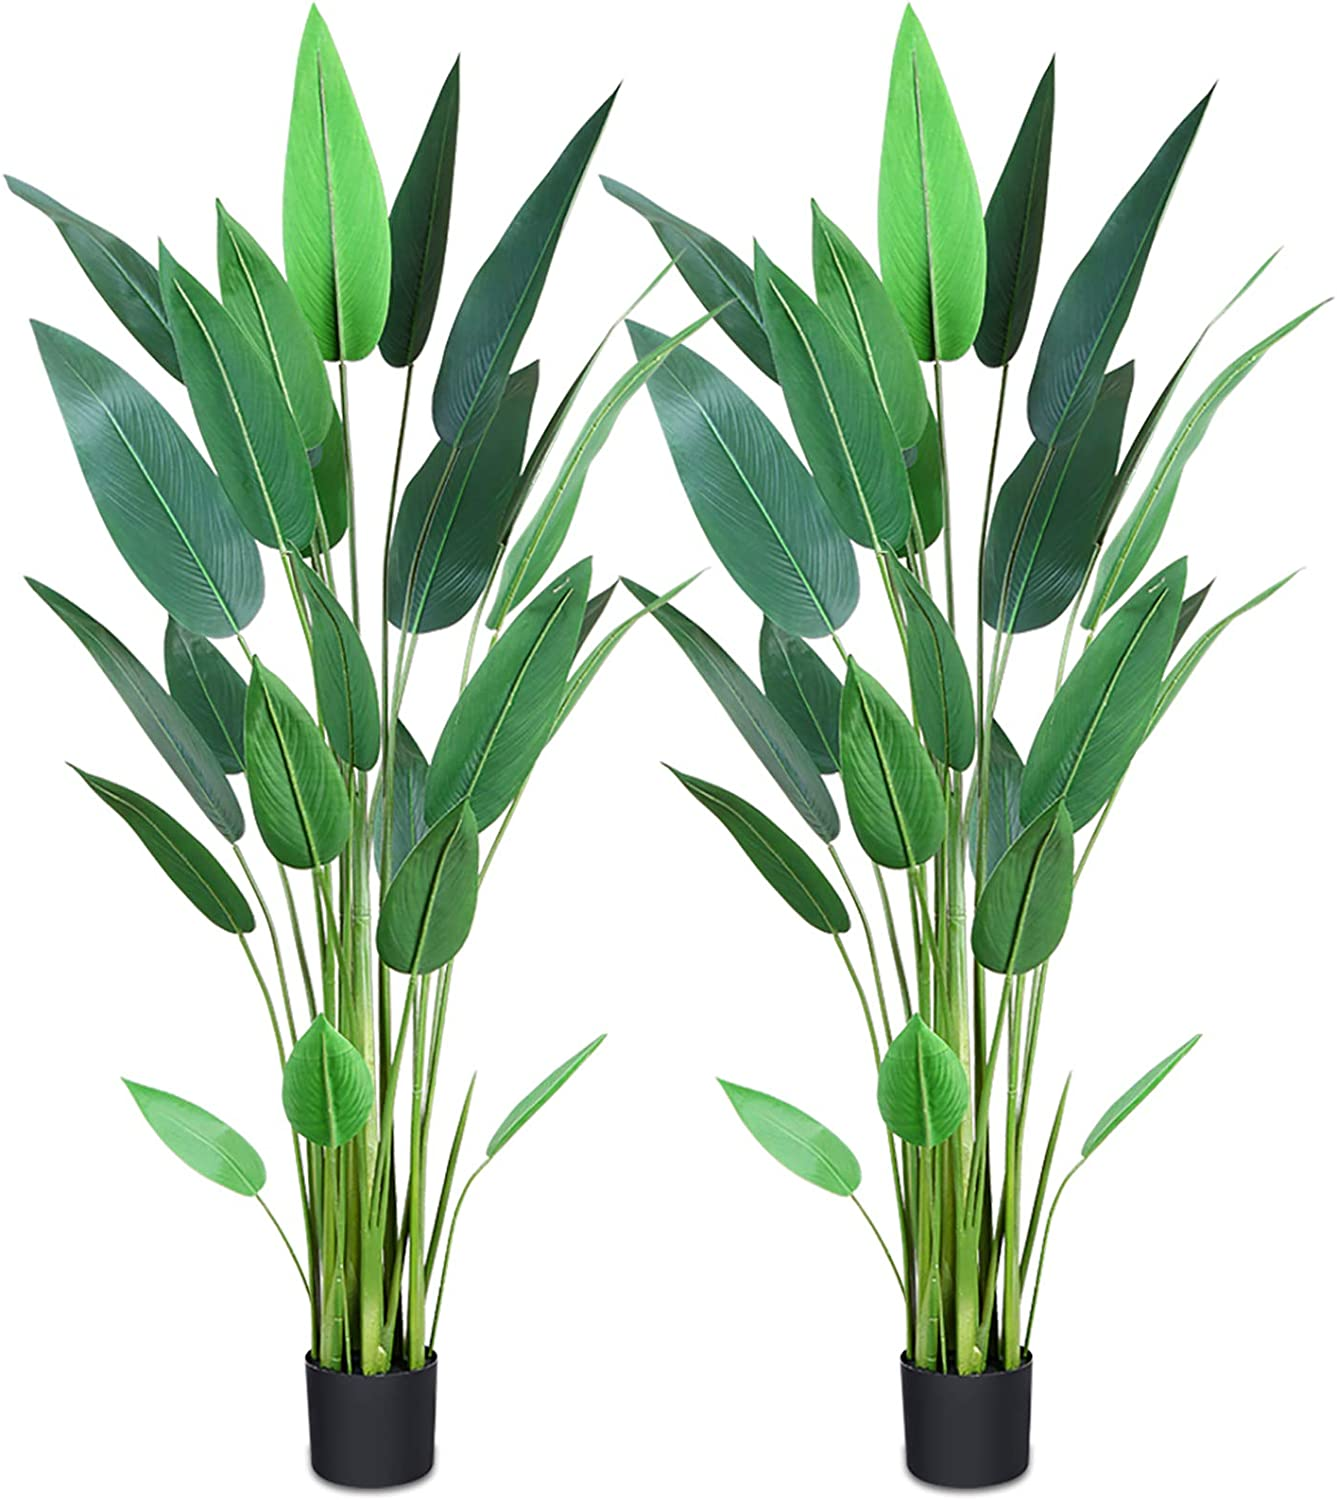 CROSOFMI Artificial Bird of Paradise Plant 5.2Feet,Fake Tropical Palm Tree,Perfect Faux Strelitzia Plants in Pot for Indoor Outdoor House Home Office Garden Modern Decoration Housewarming Gift-2Pack